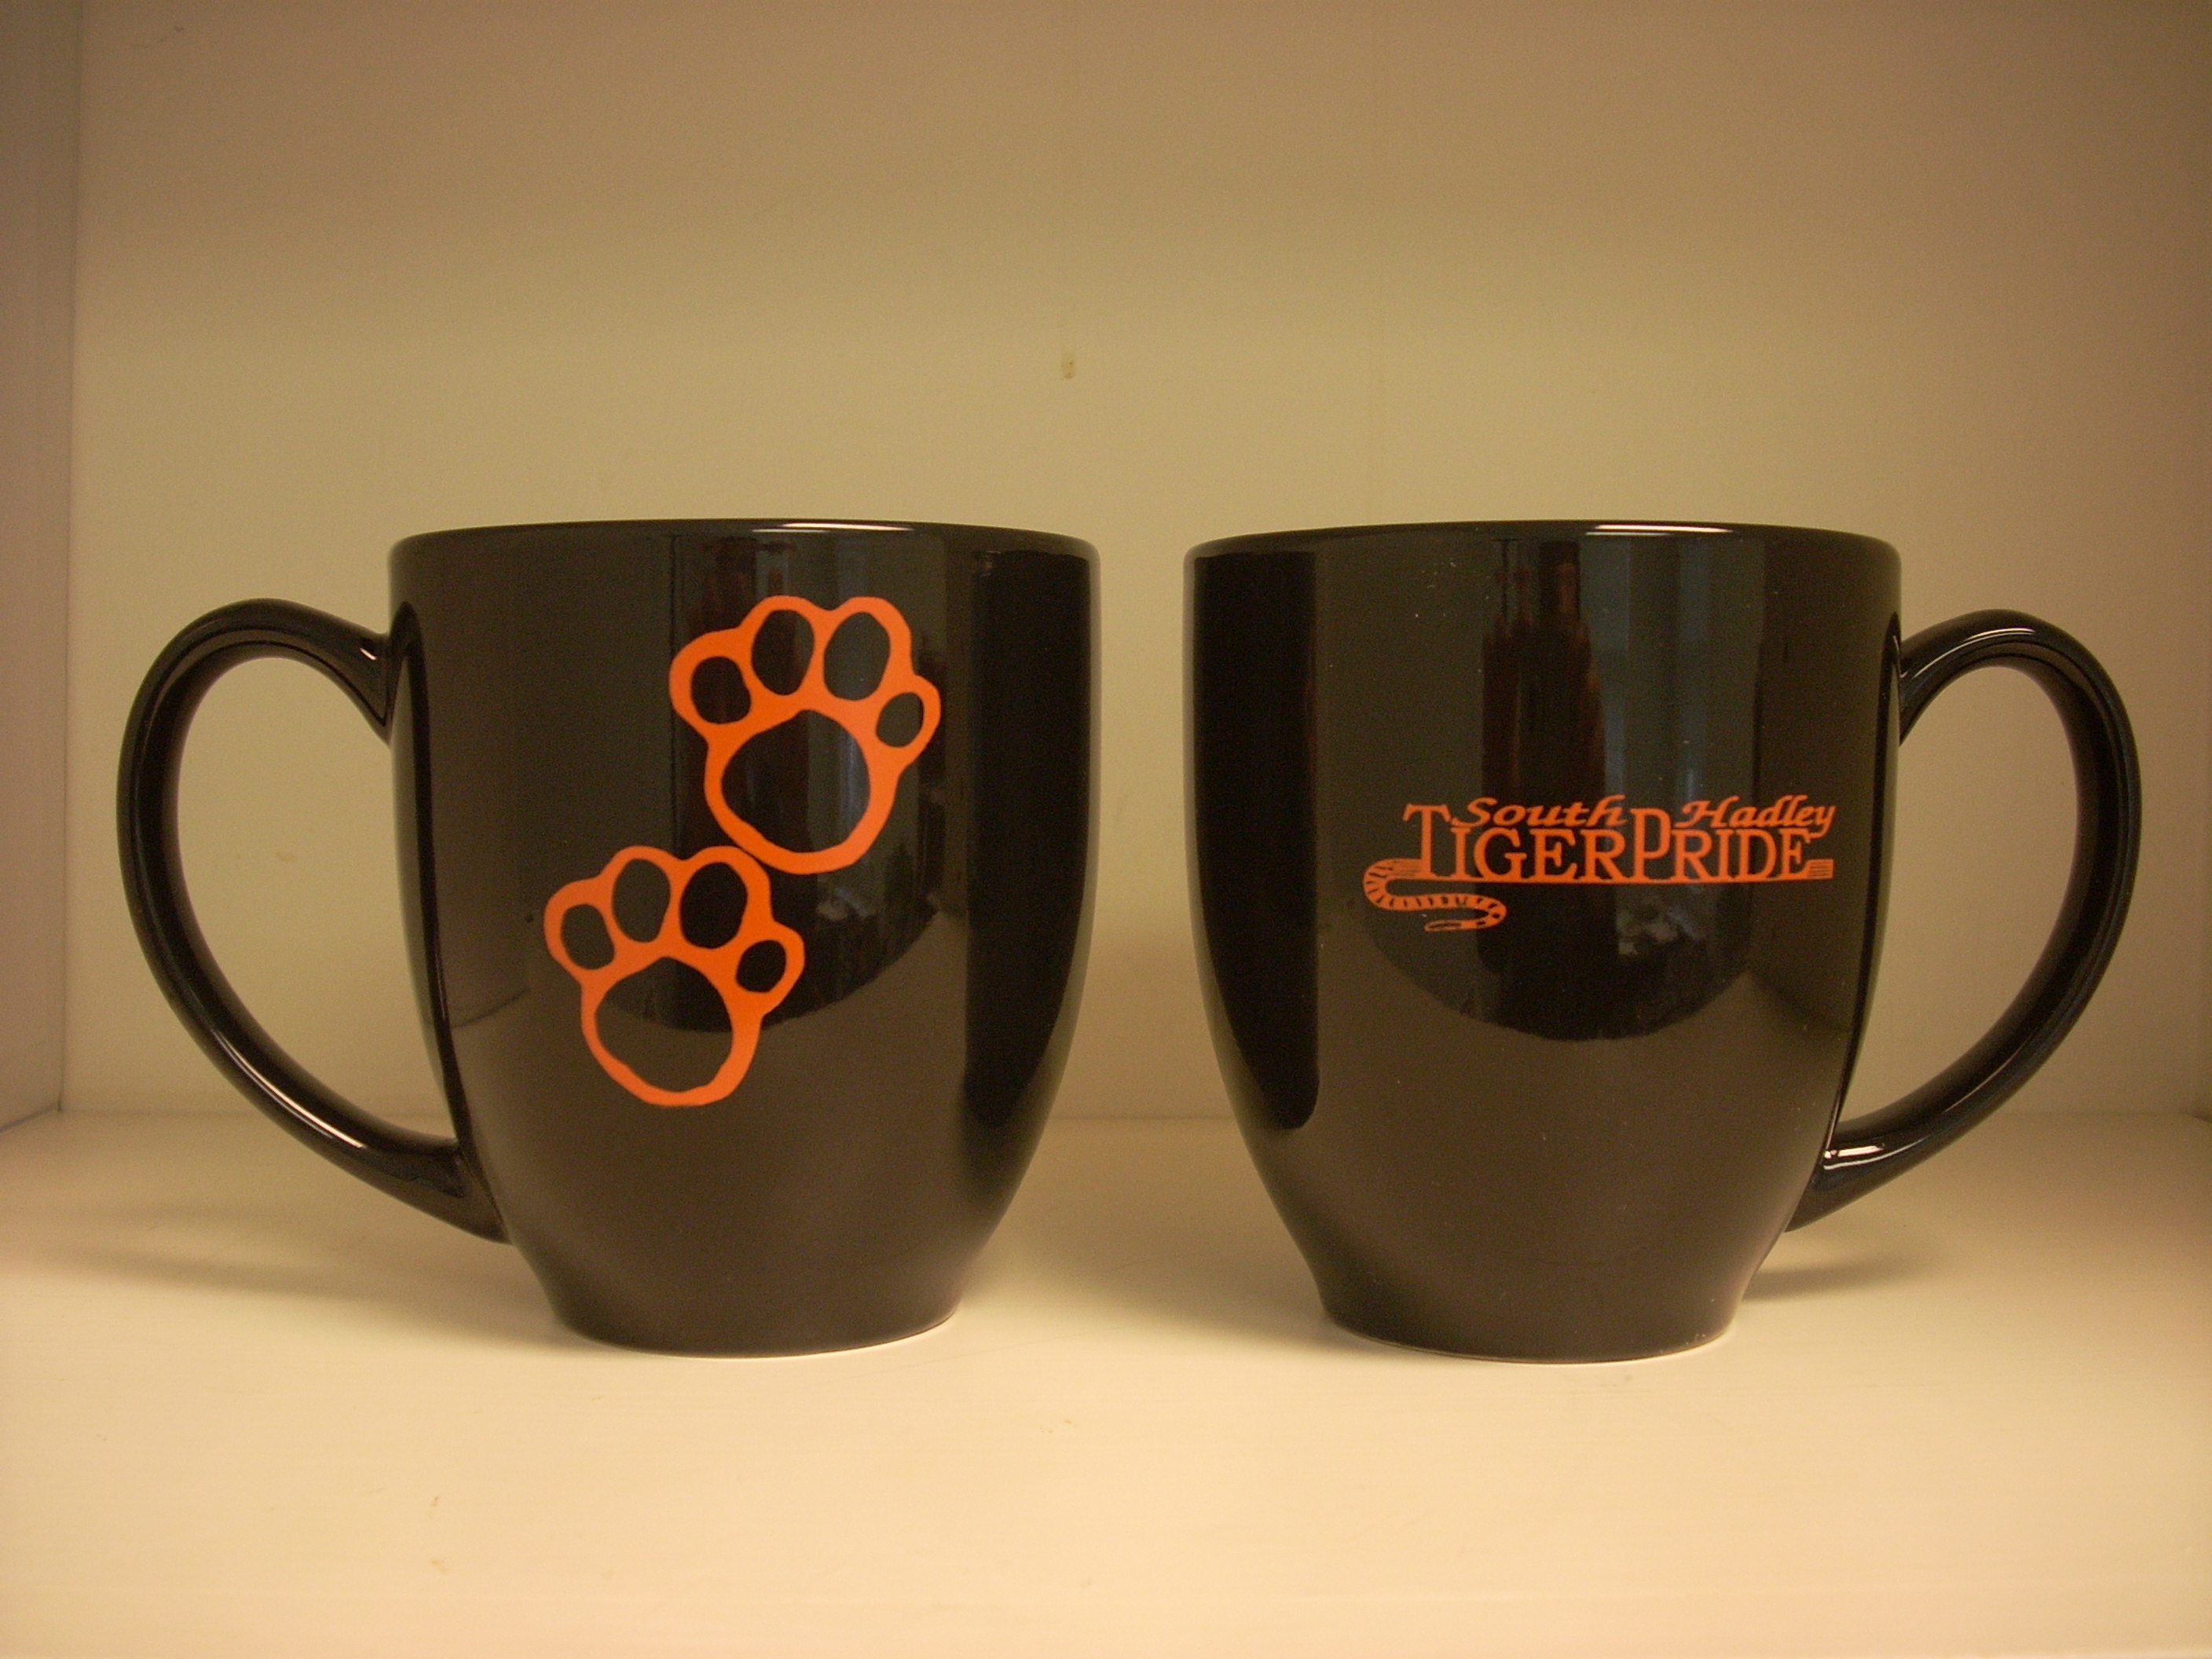 tigerpride_coffee_mugs_1.jpg